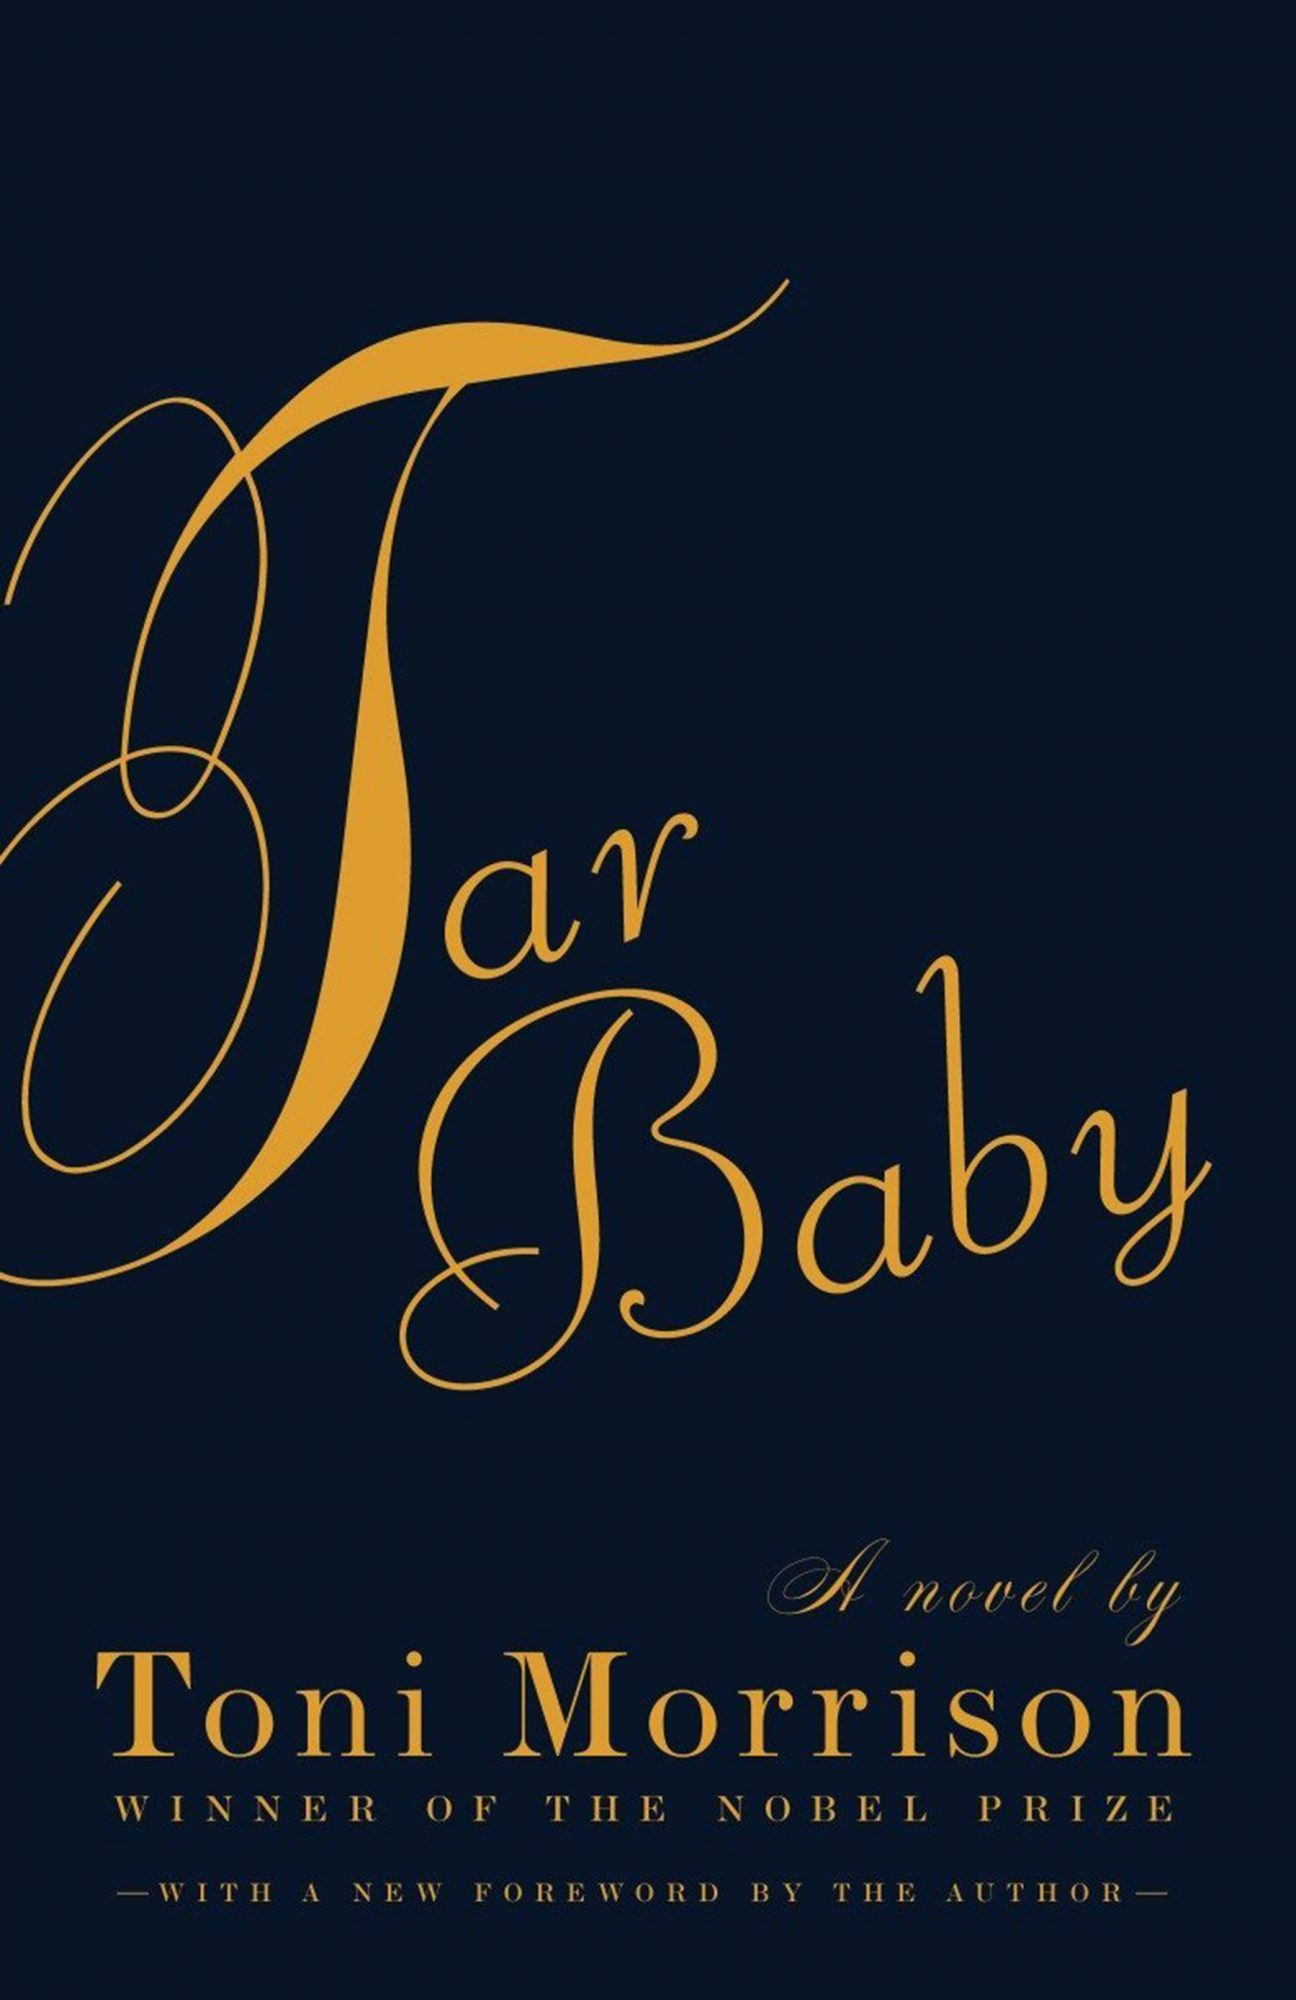 Tar Baby by Toni MorrisonPublisher: Vintage